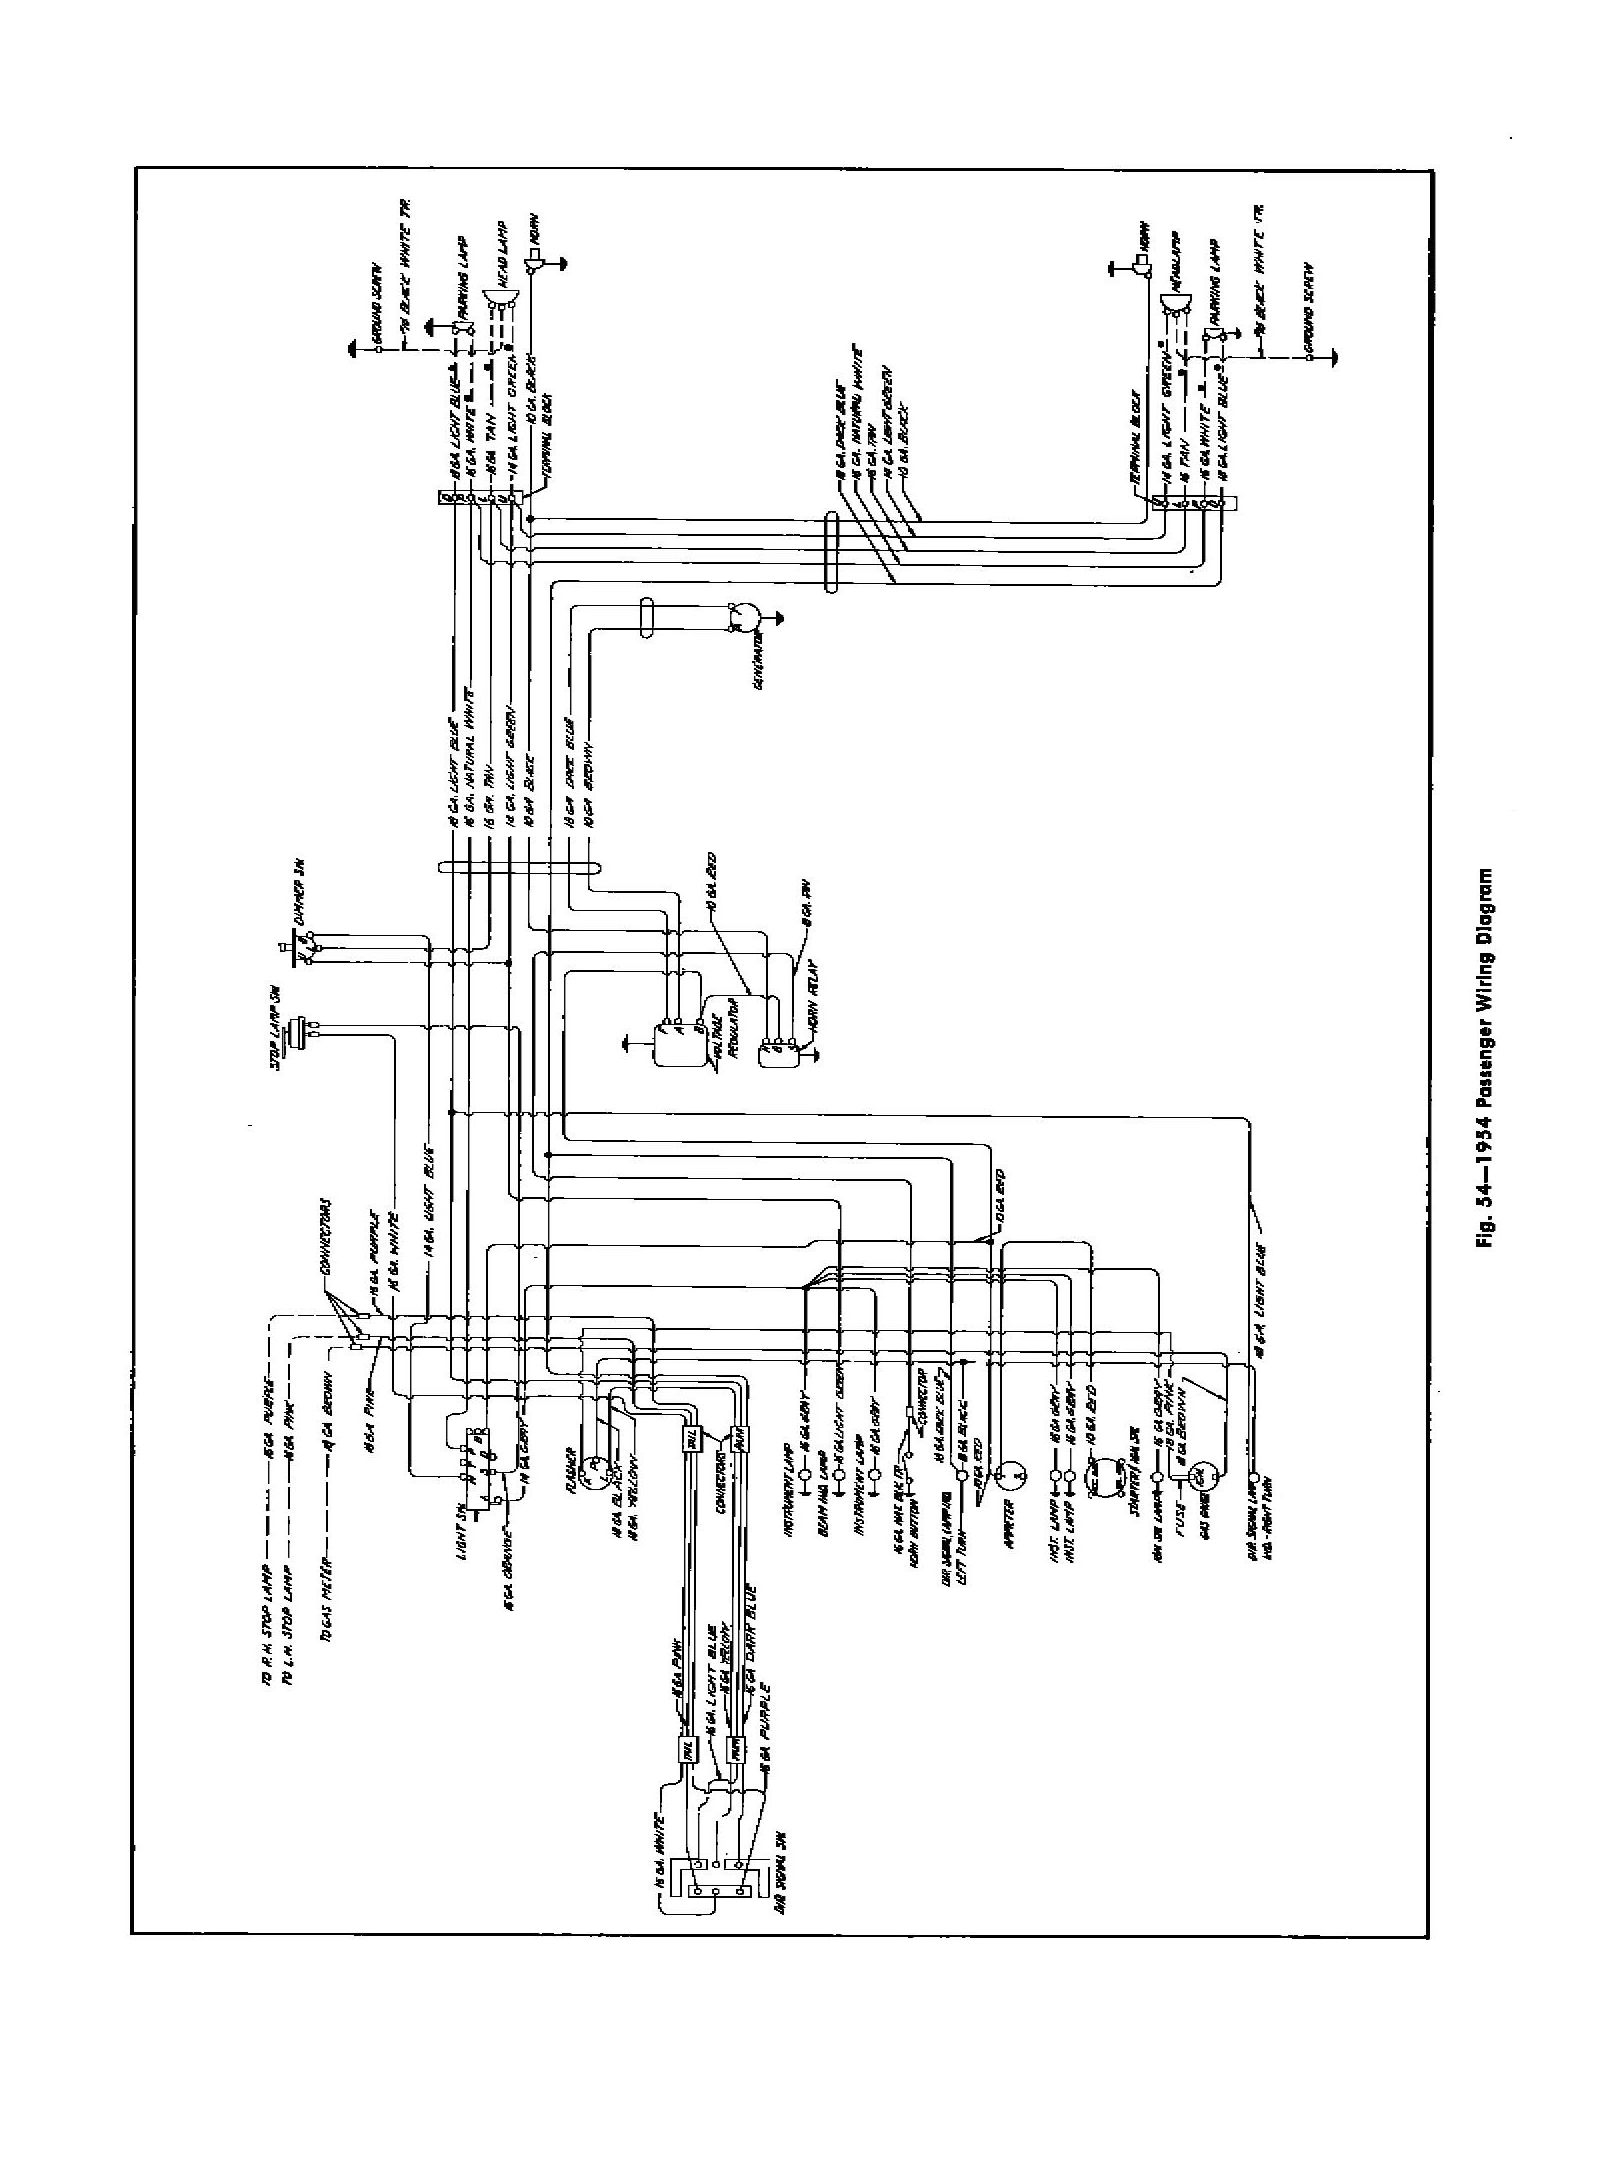 Car on 1953 Bel Air Wiring Diagram